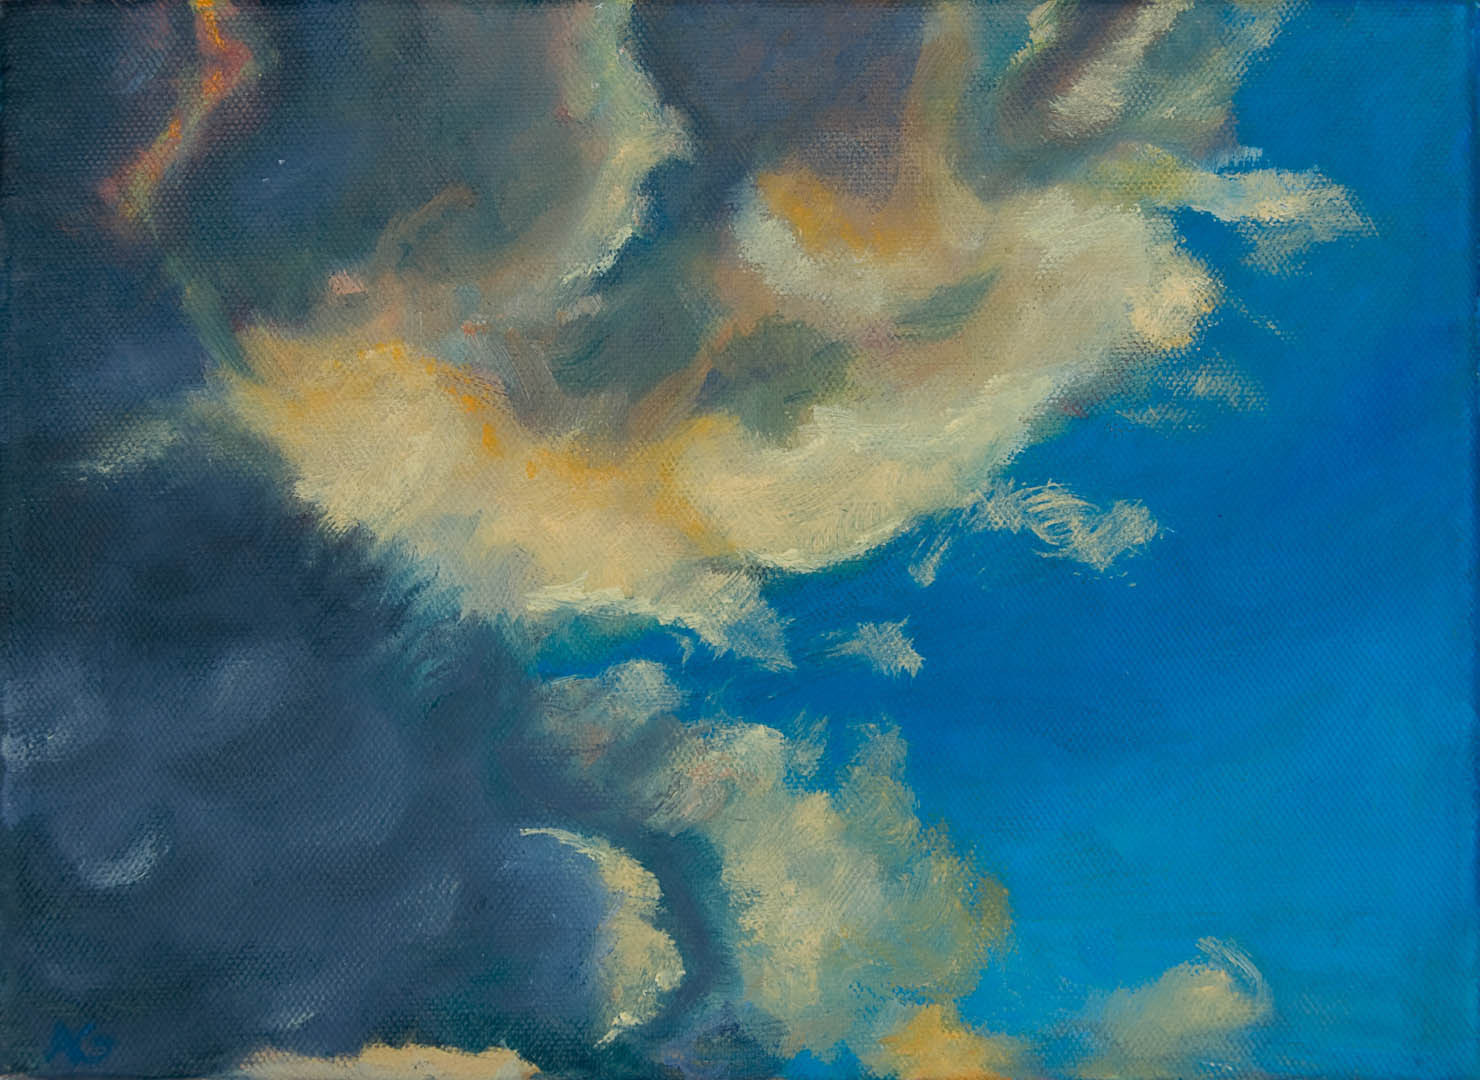 02 Clouds I, Oil on Canvas 8x10 $650